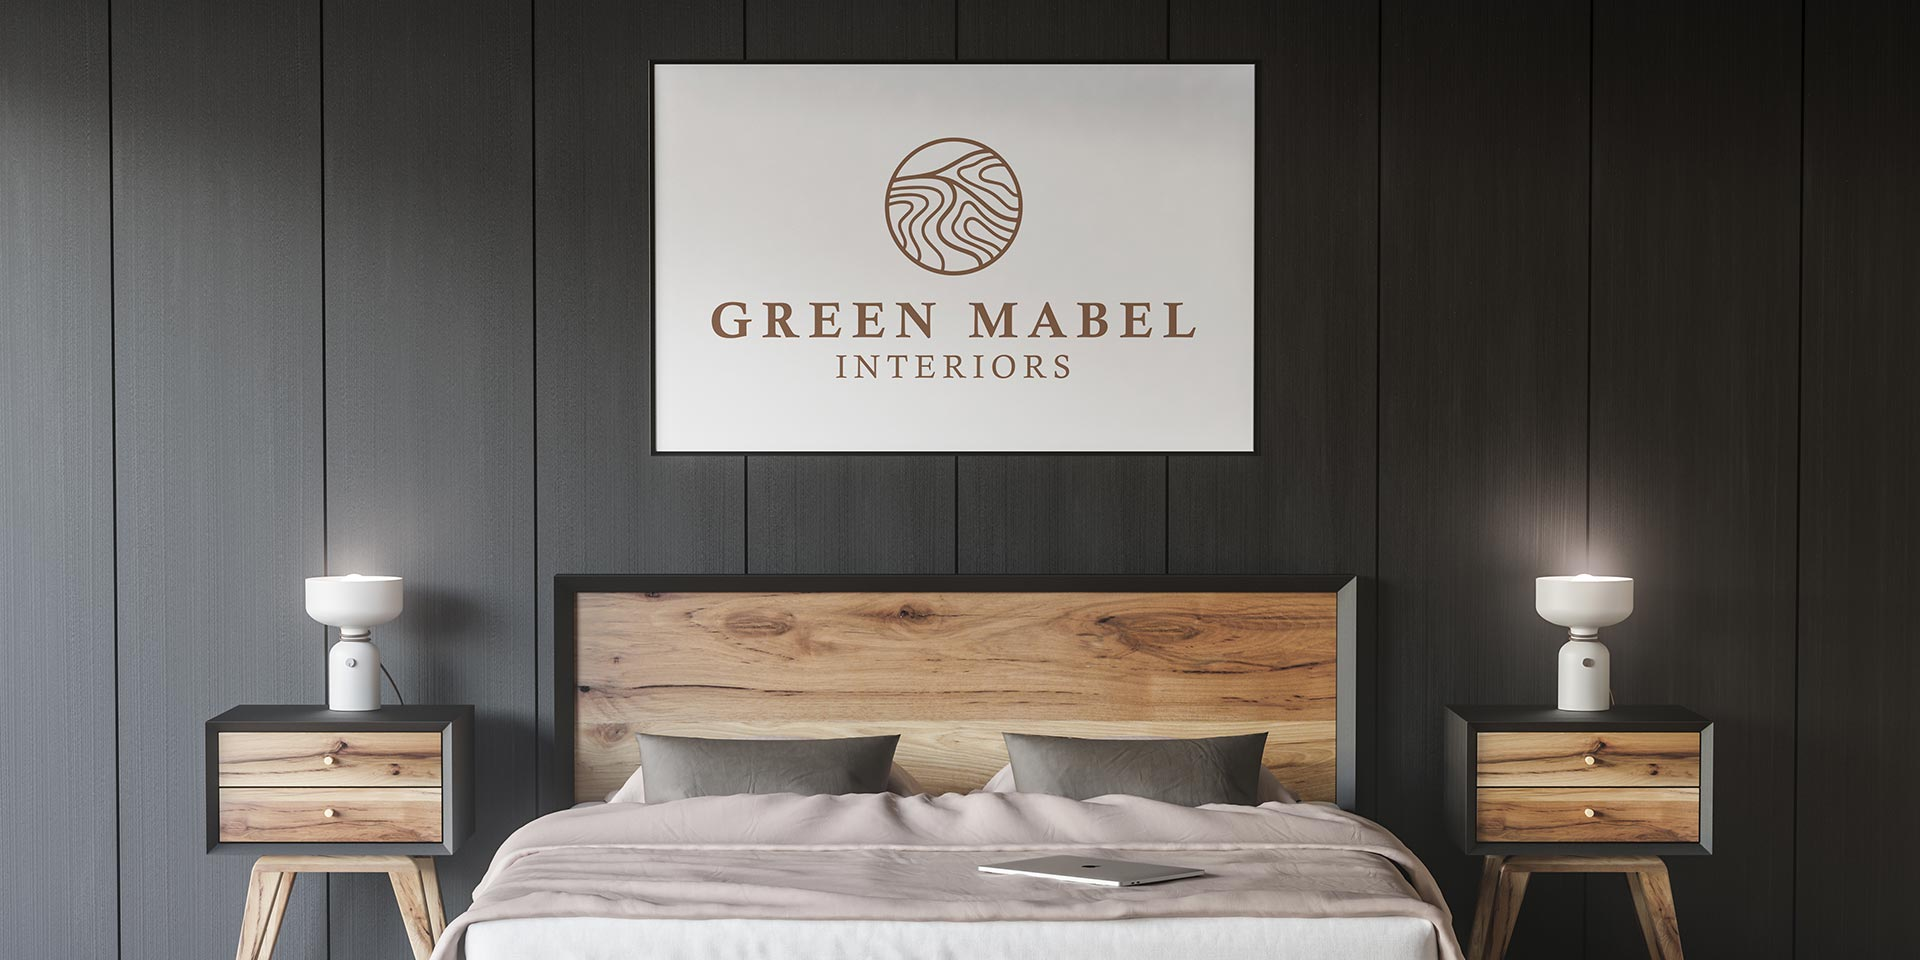 thefingerprint Green Mabel Interiors branding project